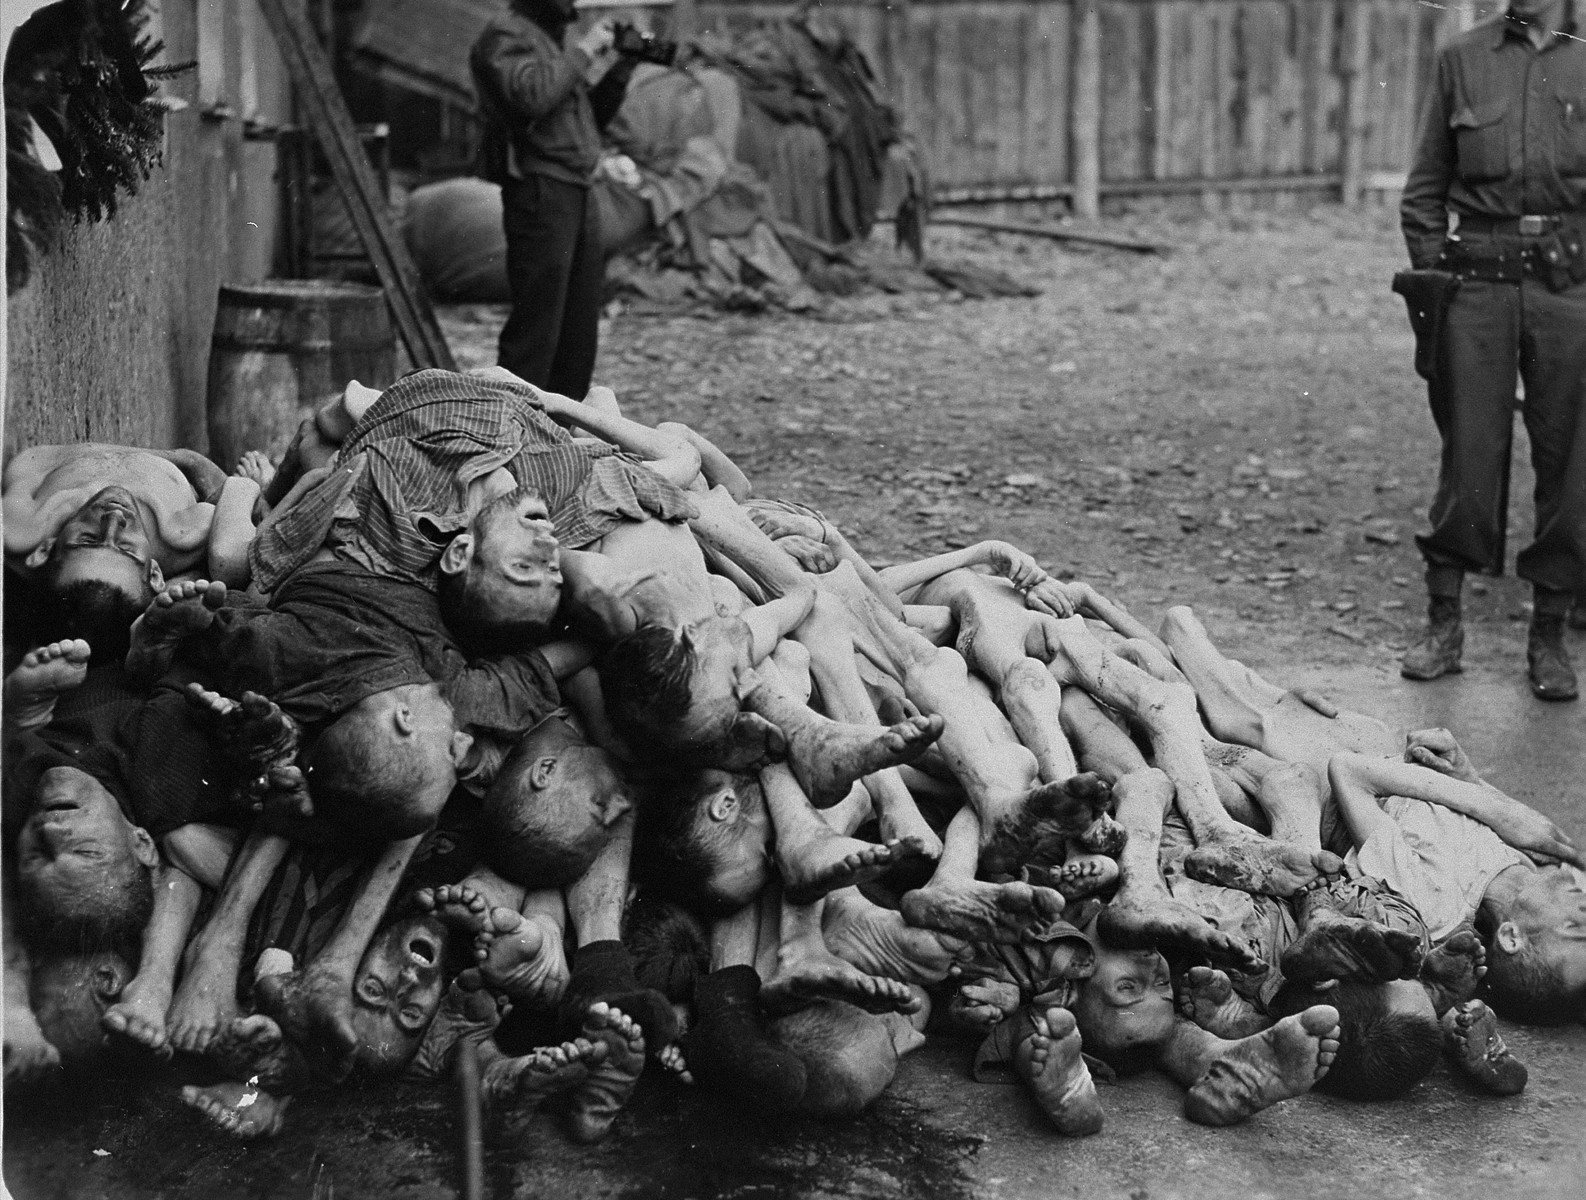 https://upload.wikimedia.org/wikipedia/commons/c/c6/Buchenwald_Corpses_07511.jpg